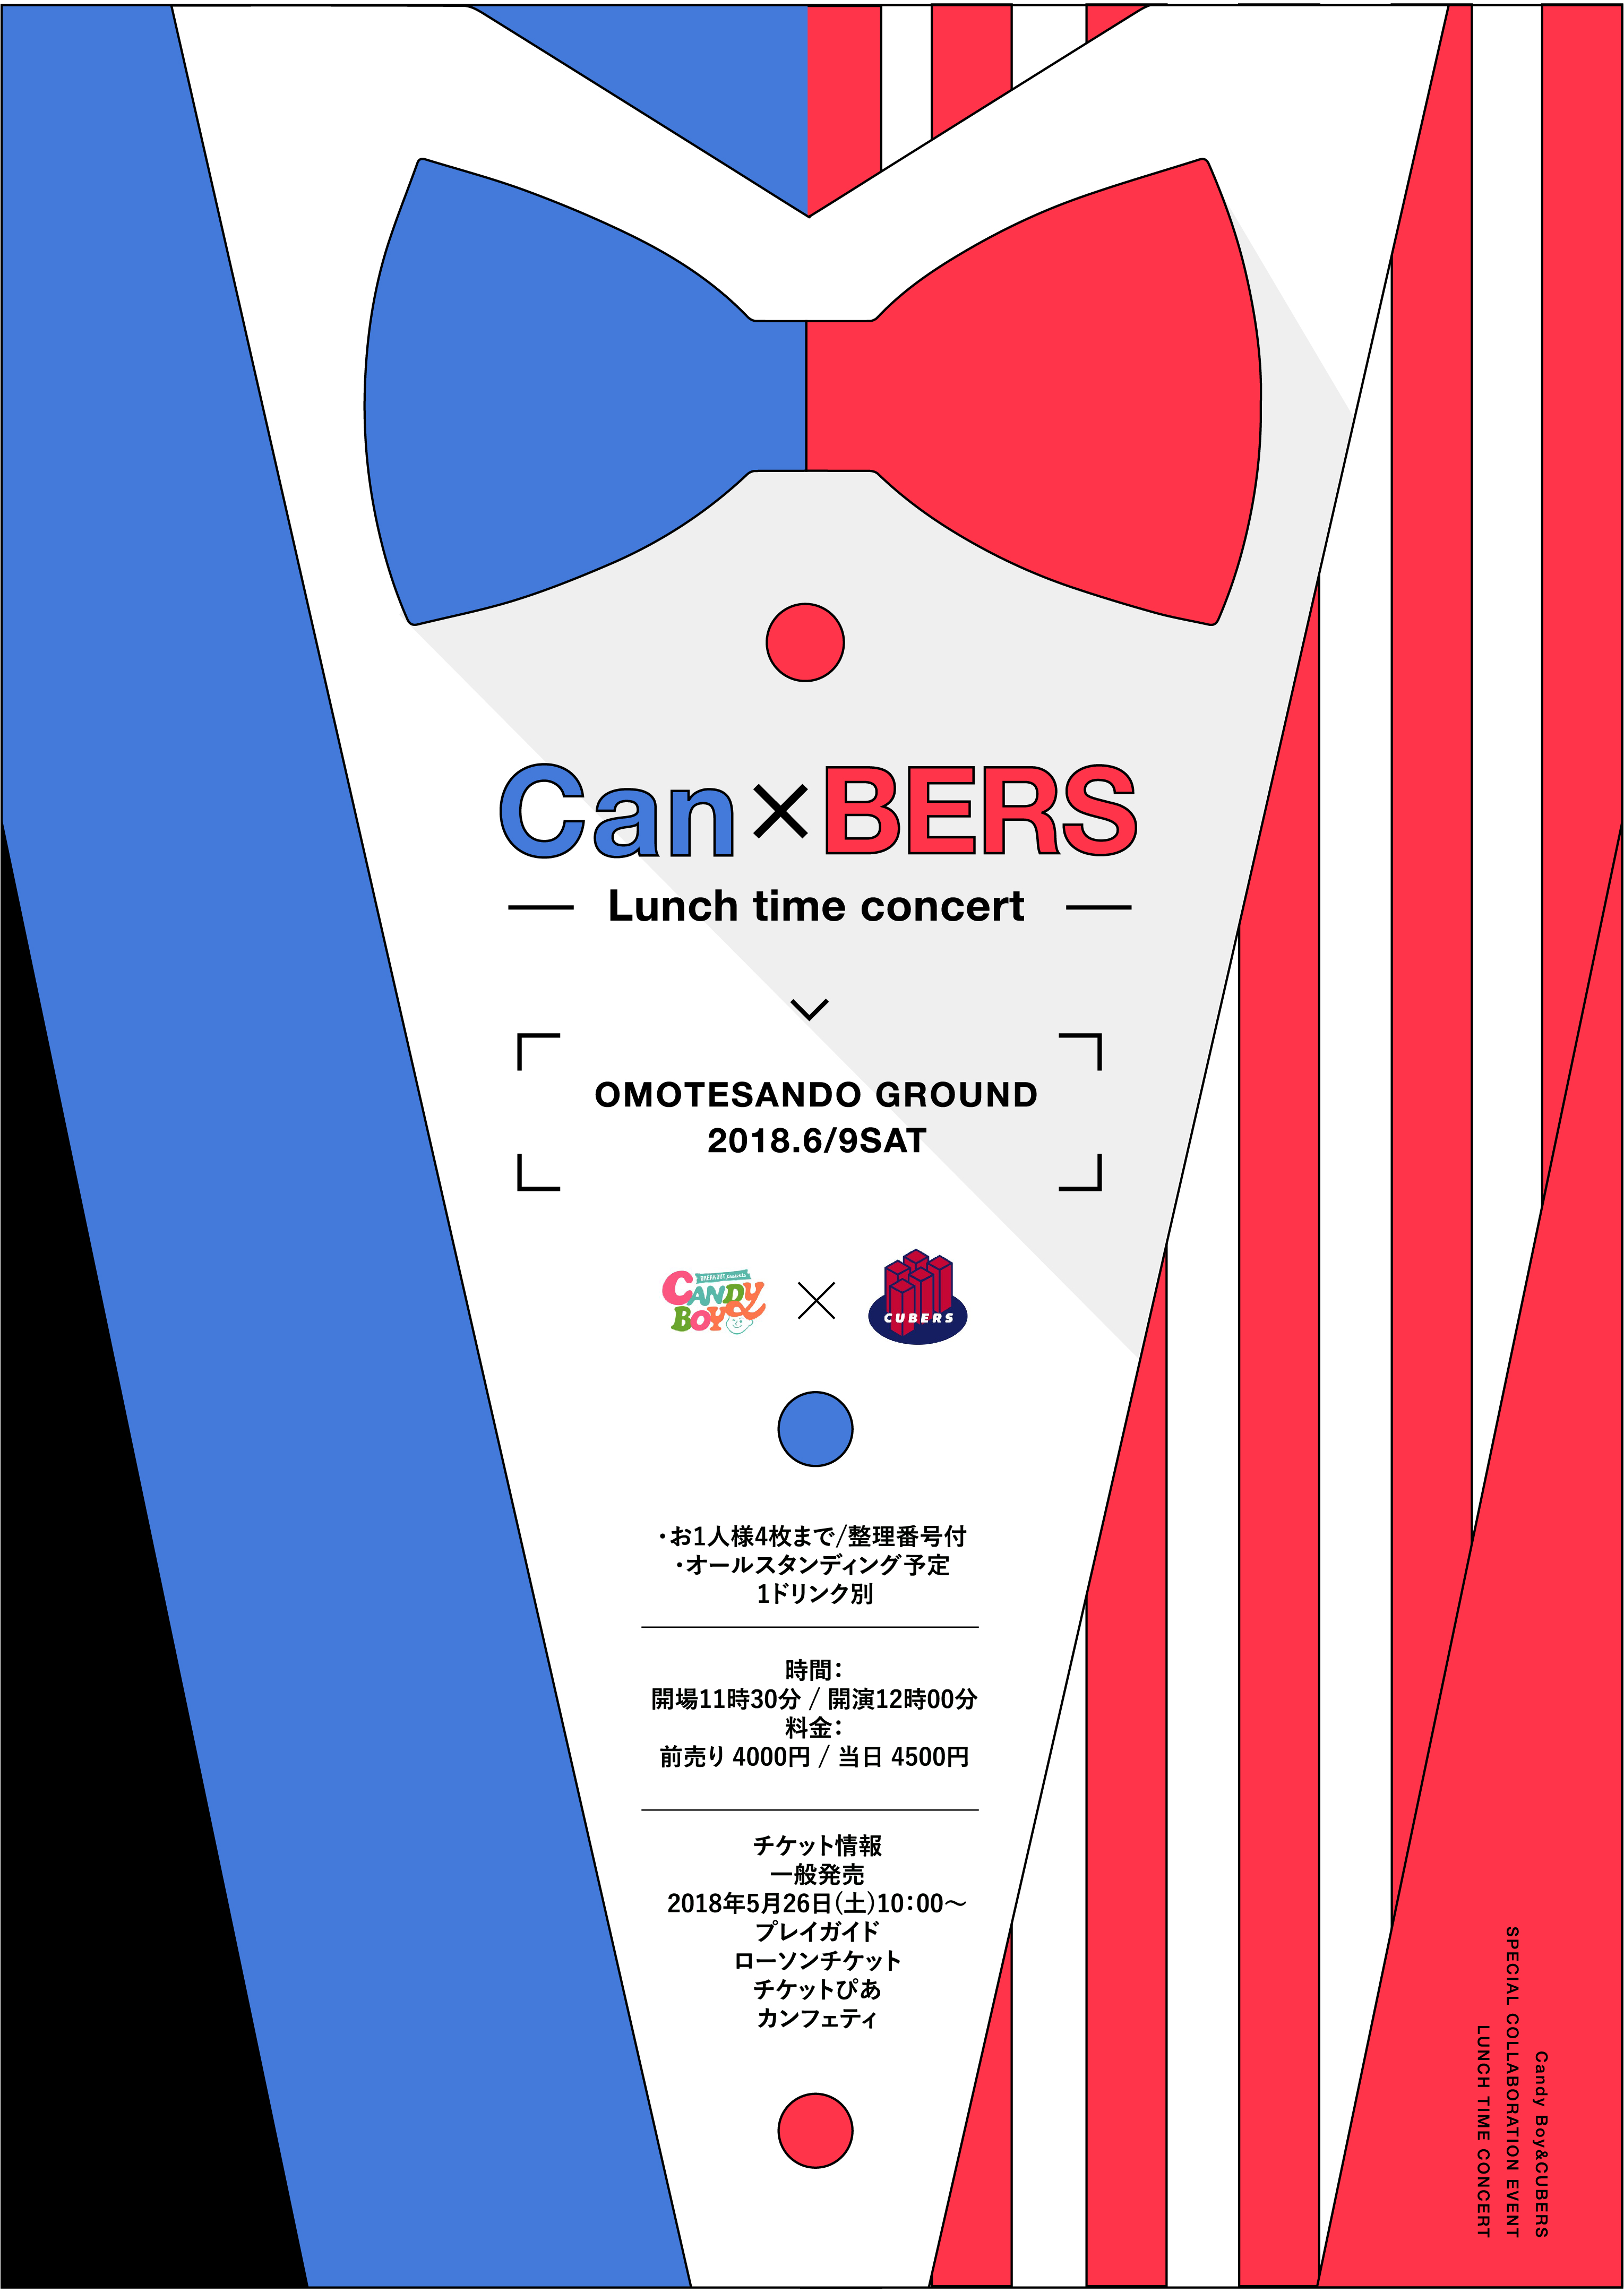 ☆★CUBERSとCandy Boyの2組で6月9日(土)に「Can×BERS -Lunch time concert -」開催★☆